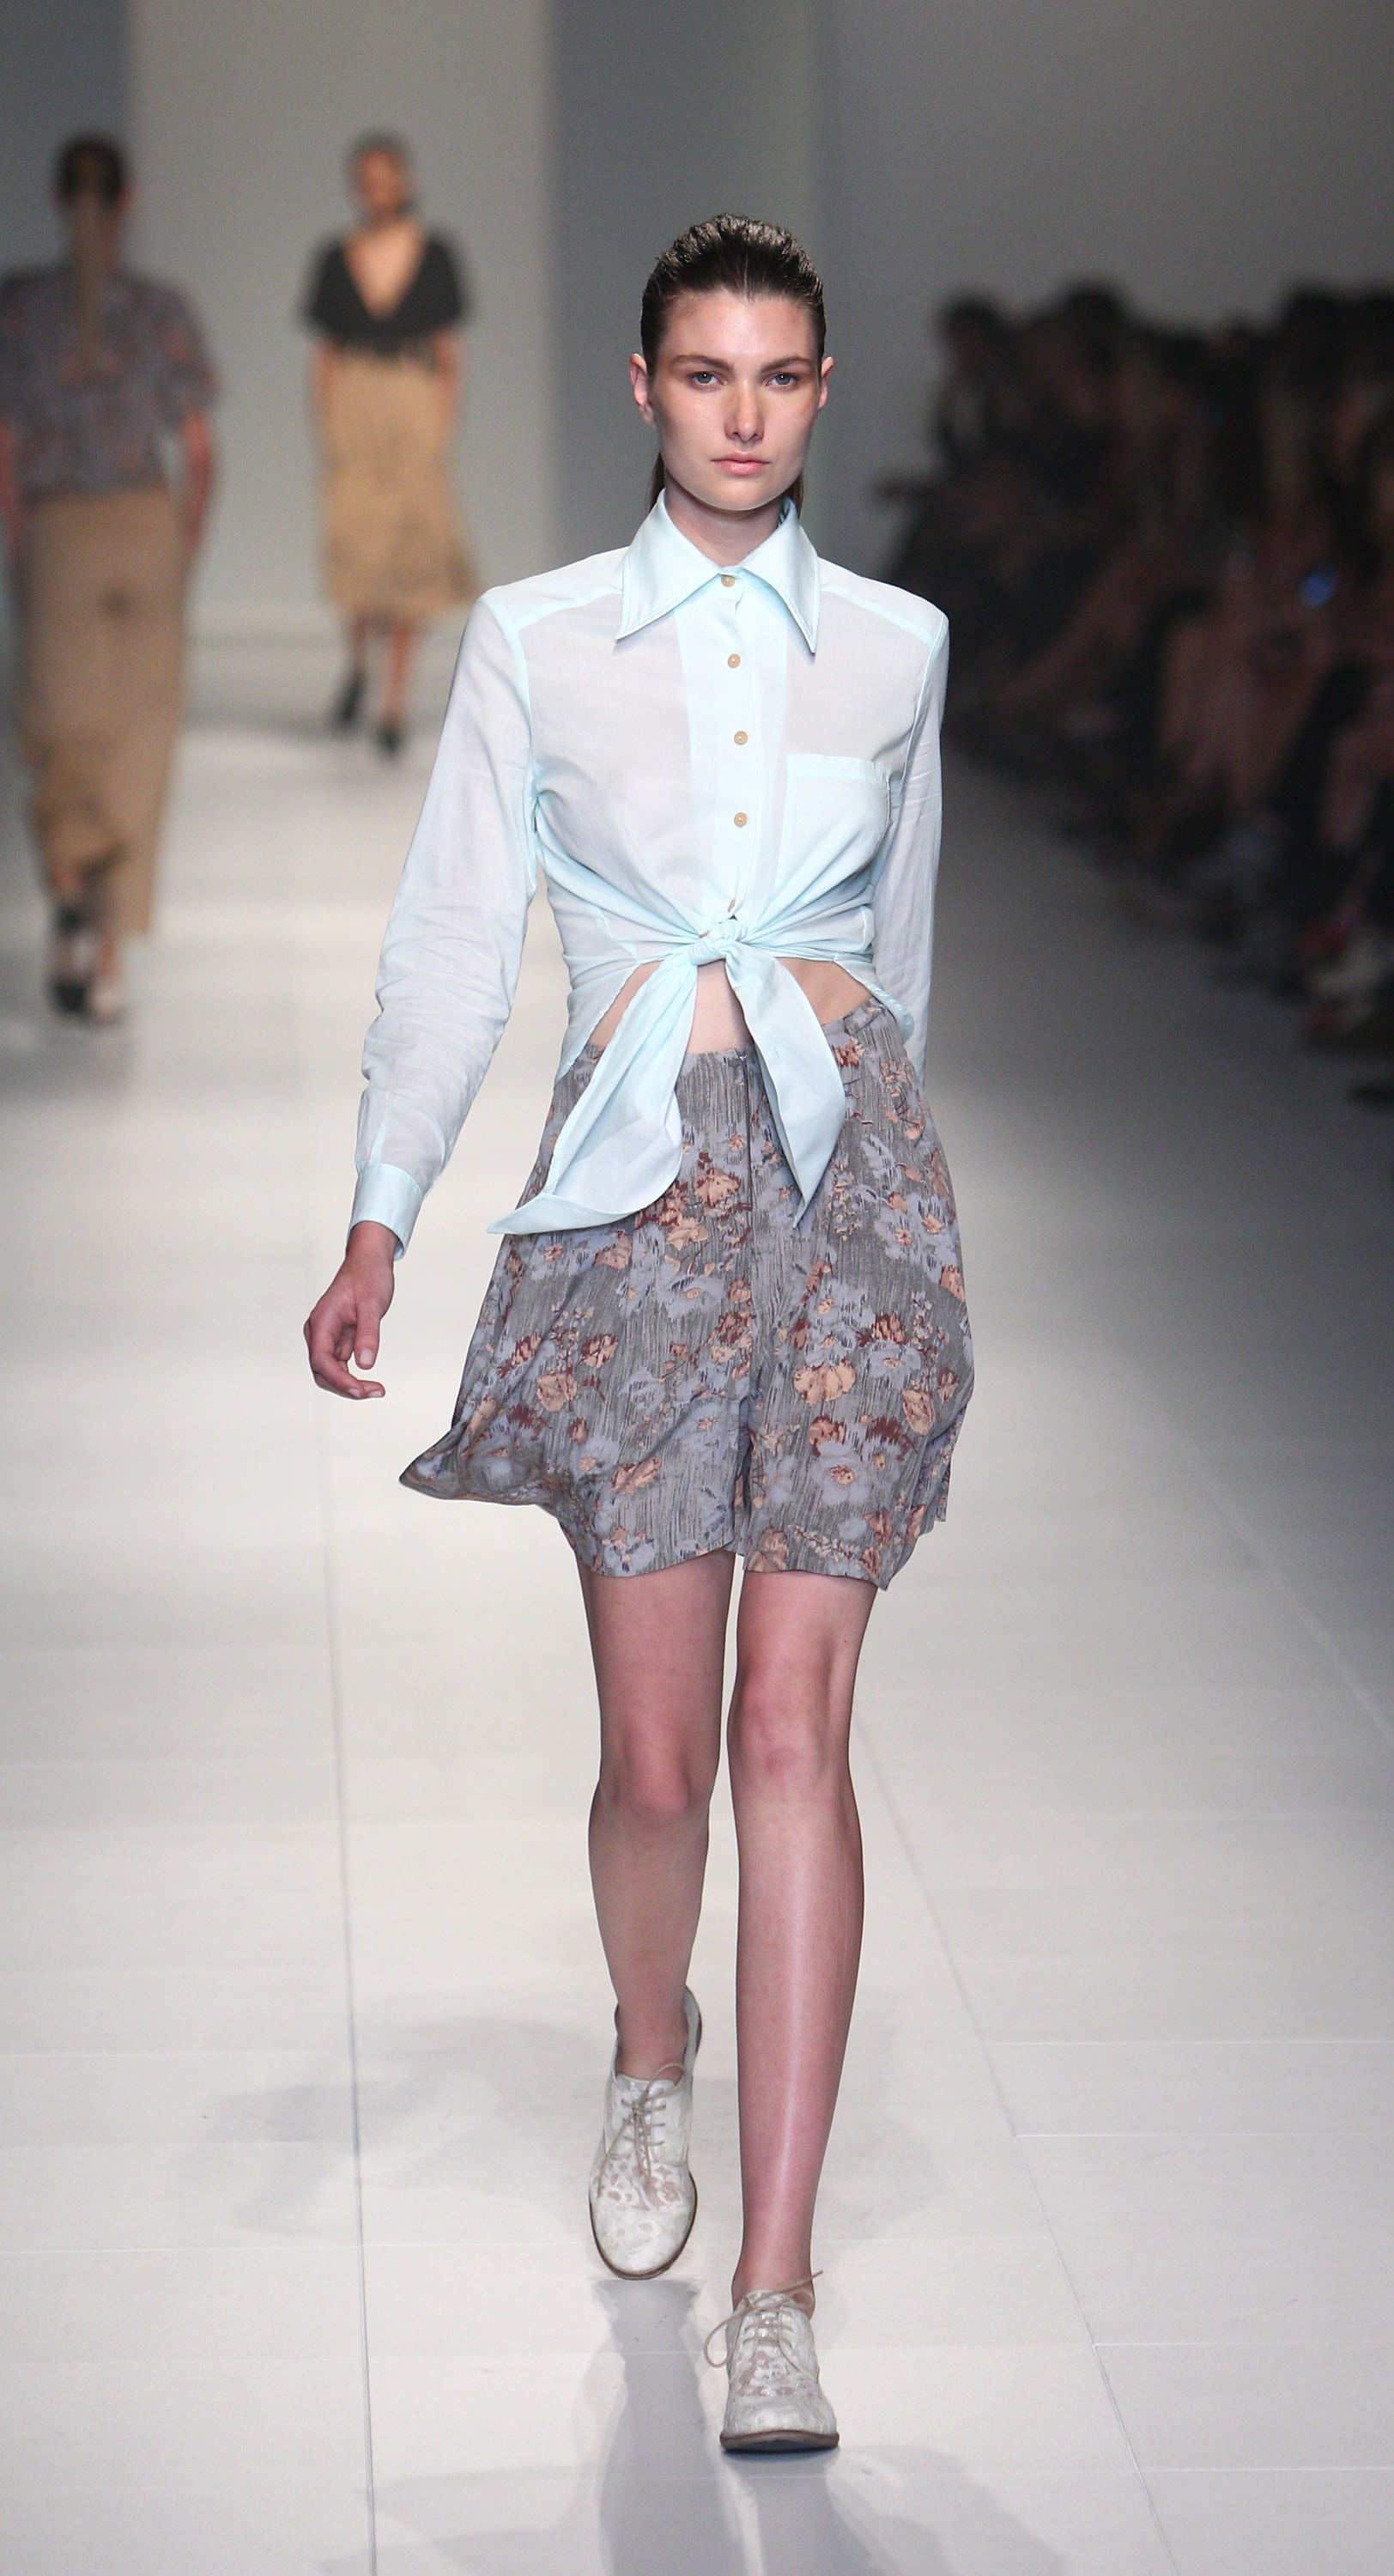 Dress Up's tied up shirts were a modern take on a 50s classic.